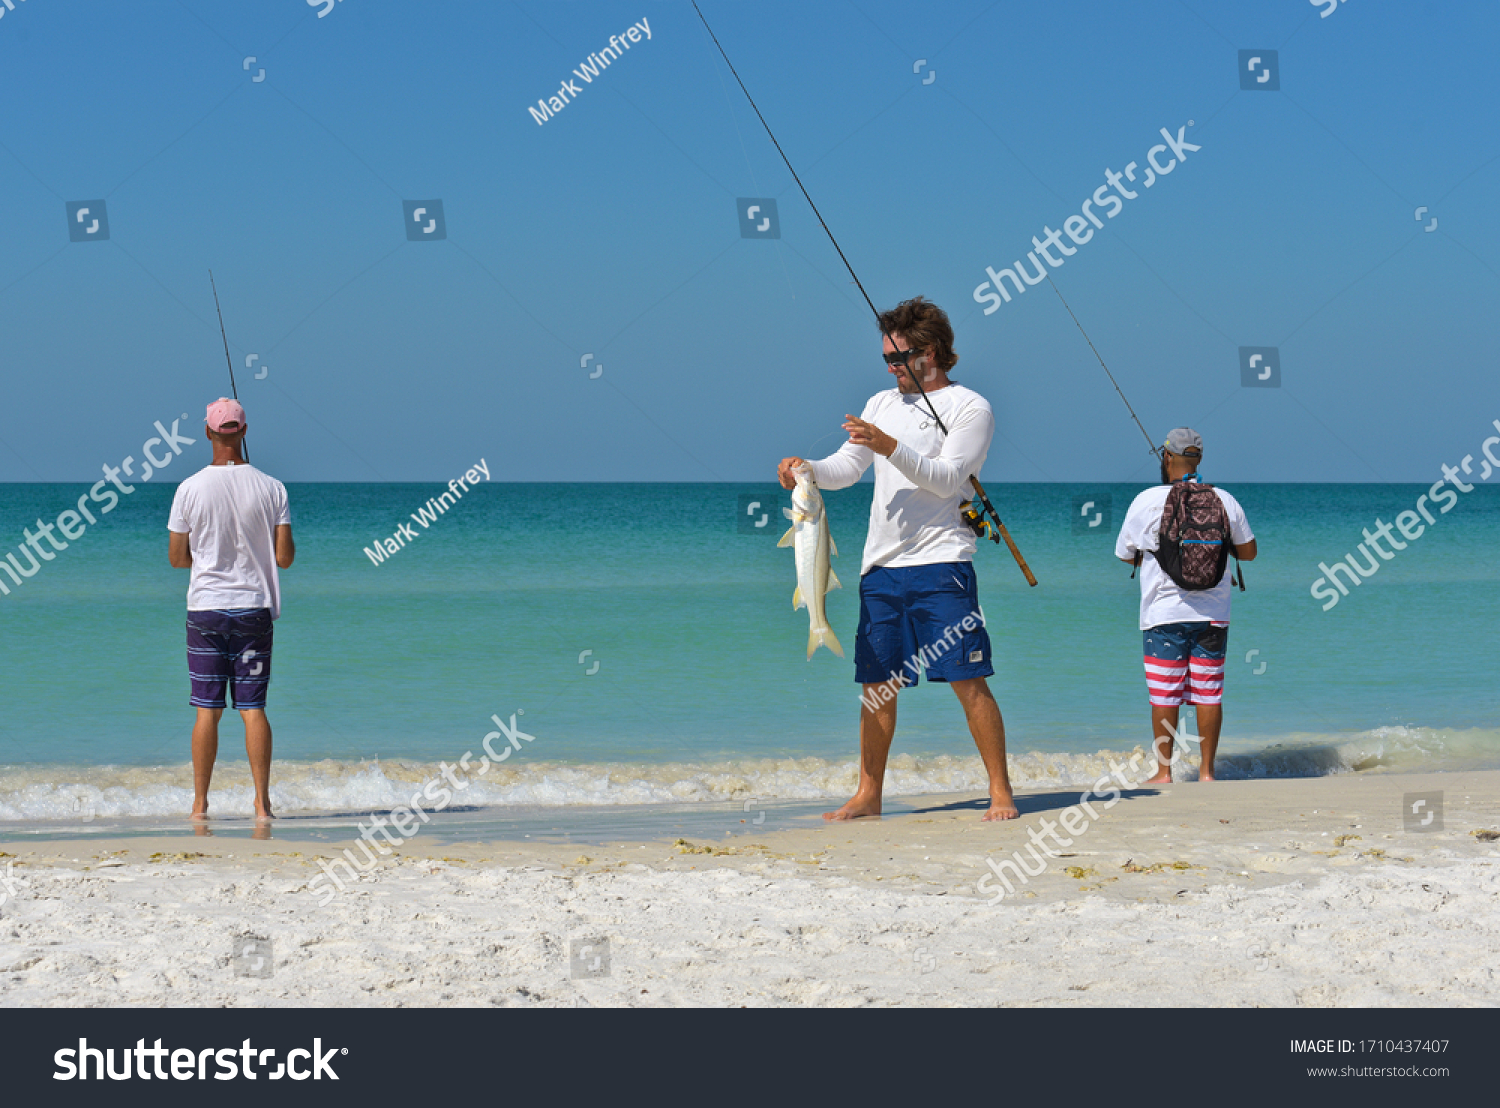 stock-photo-holmes-beach-anna-maria-isla